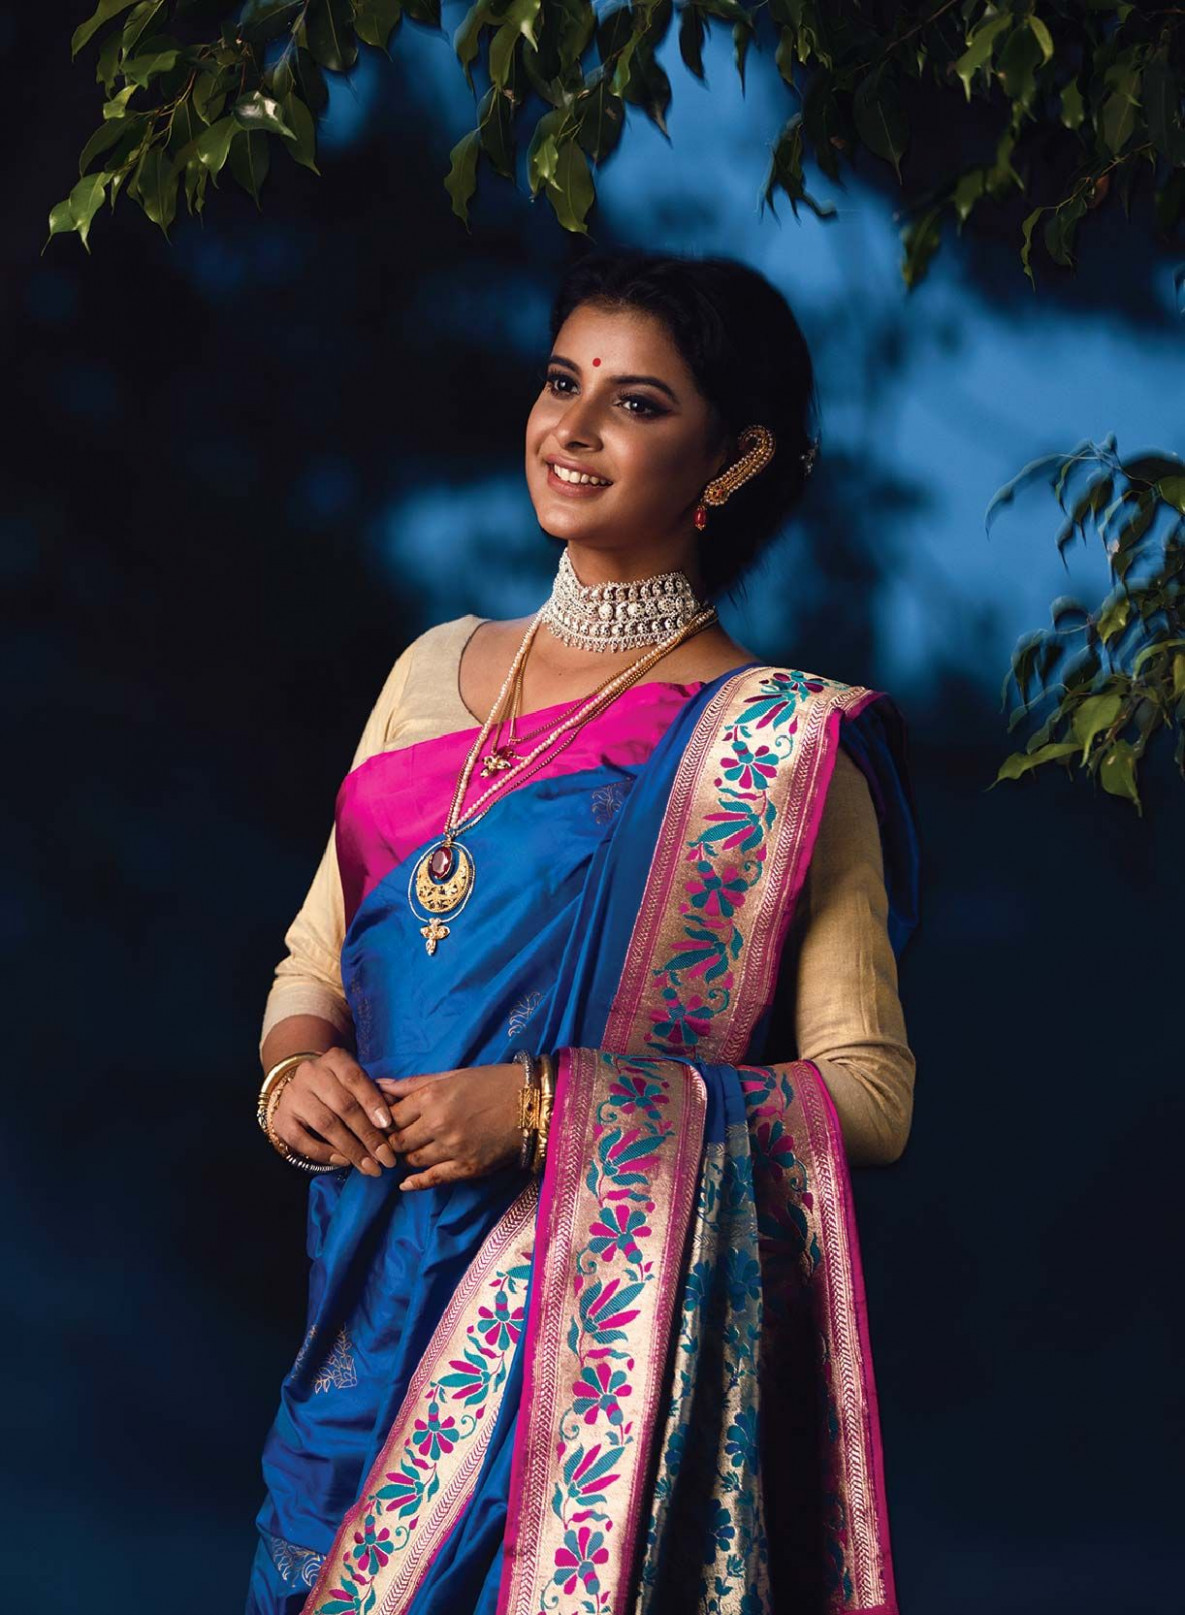 AARONG SAREE  Bangladesh fashion  Pinterest  Saree  - bangladeshi saree